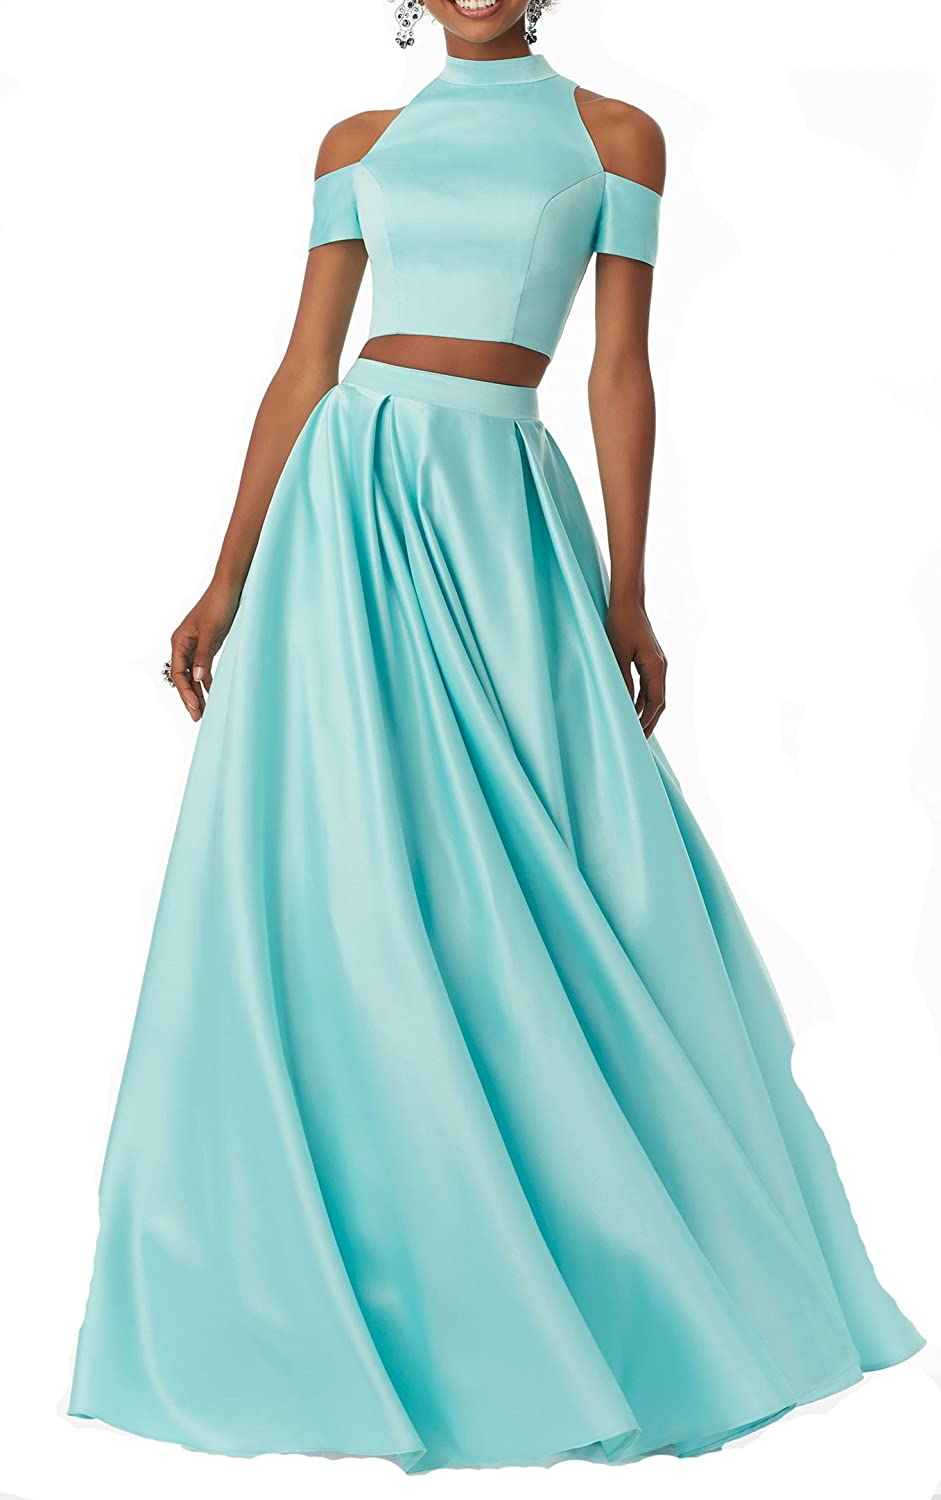 Changjie Women's Two Piece Prom Dresses Pleated Aline Formal Evening Party Gown